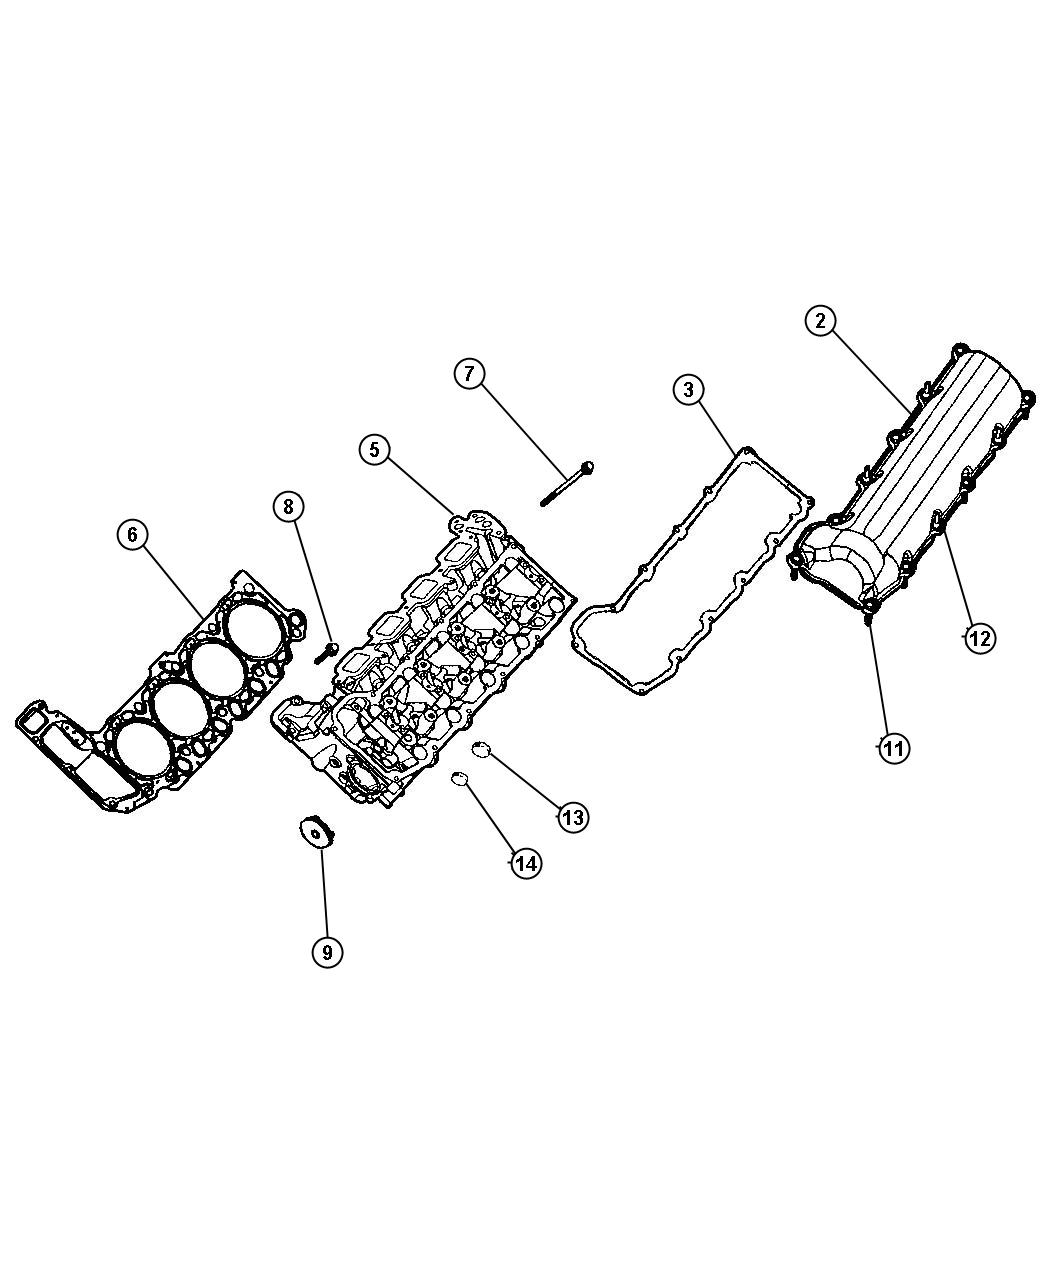 Cylinder Head (EVA). Diagram